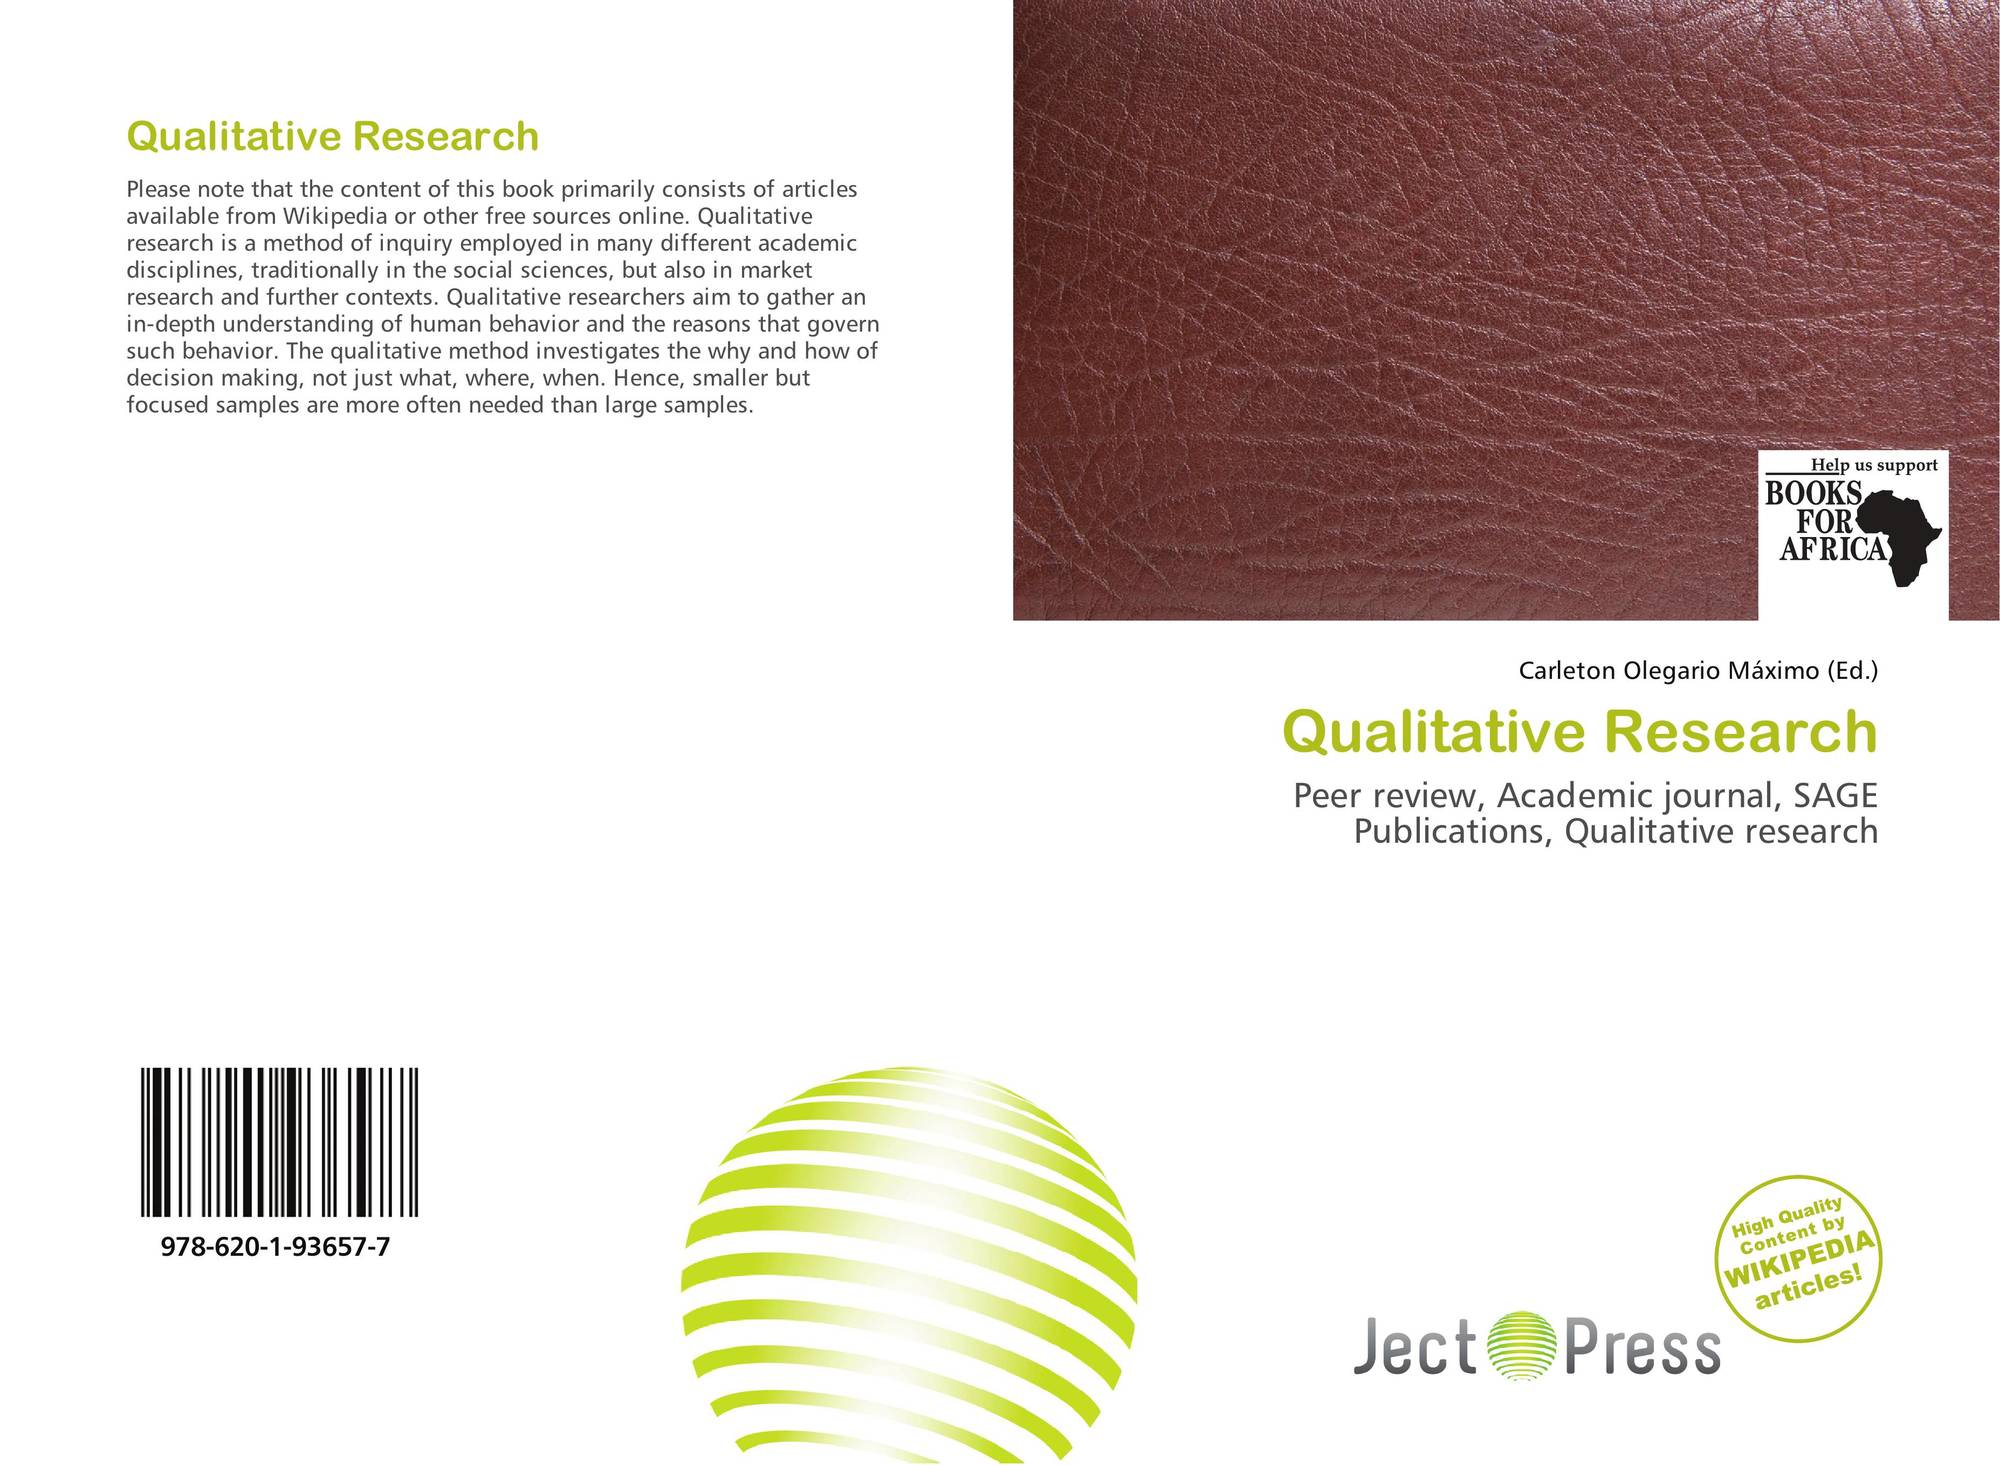 inductive qualitative research  · in general, inductive reasoning is associated with qualitative approaches, while deductive for quantitative but research is never cut-and-dry.